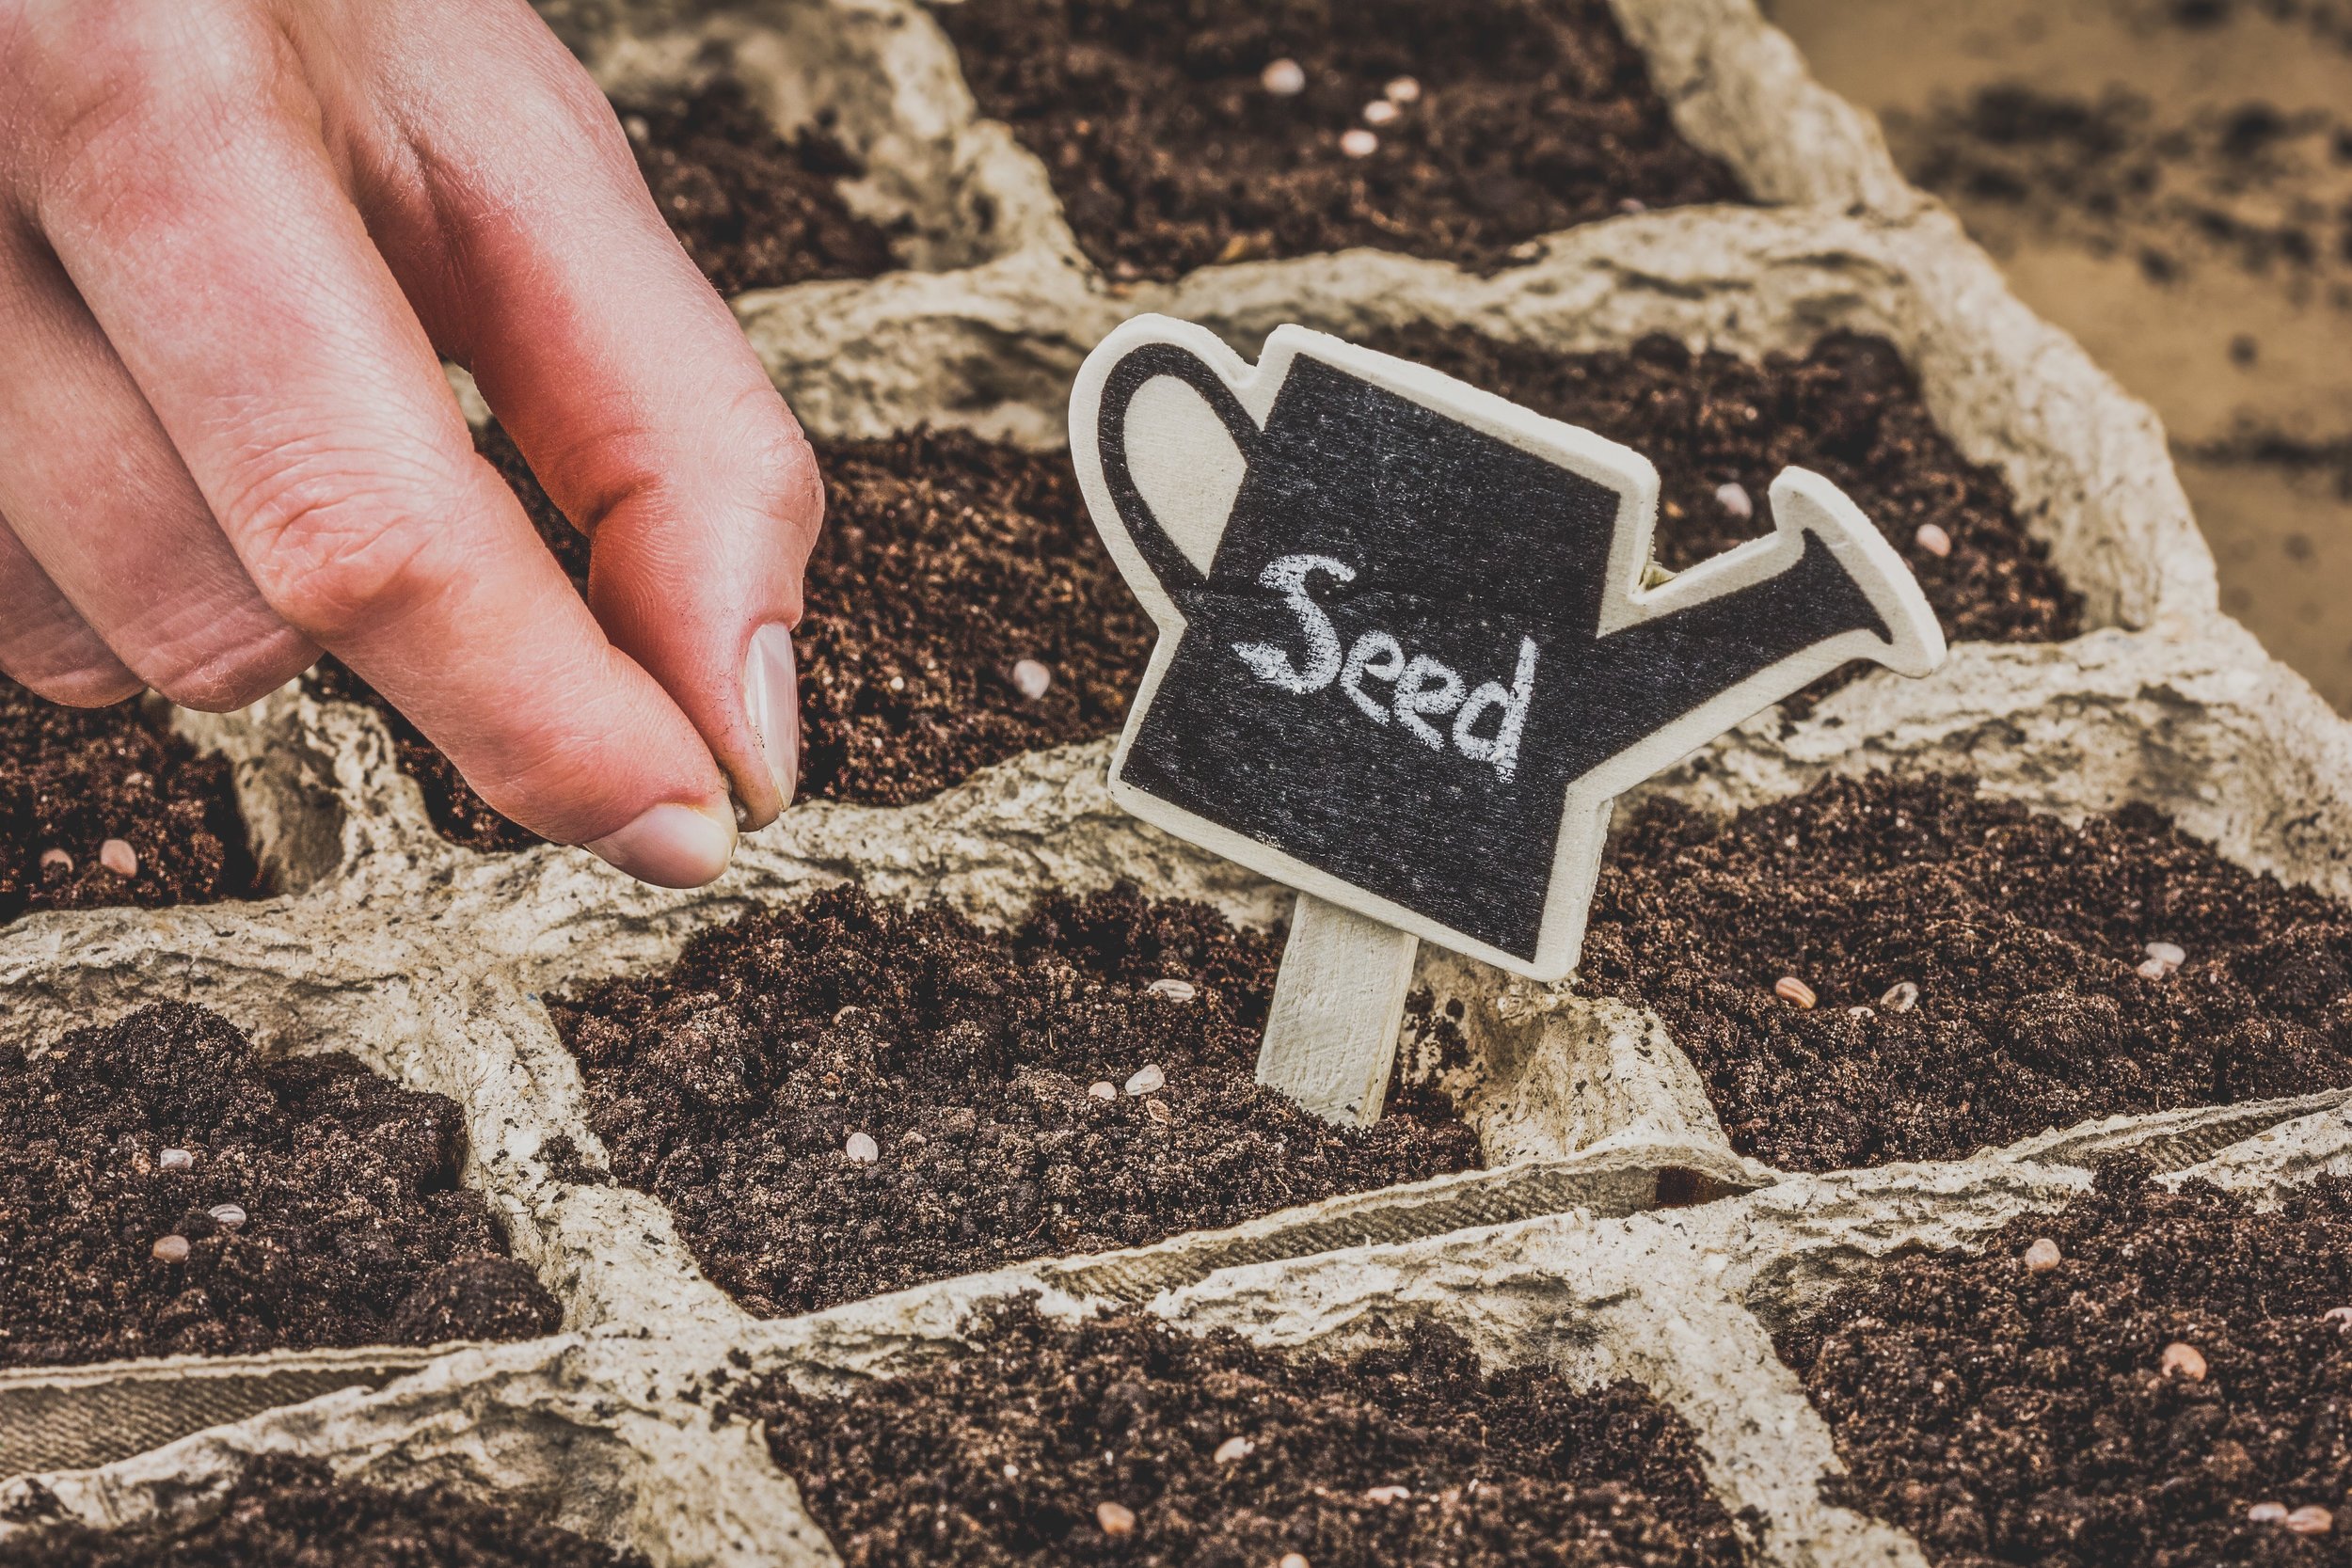 More on the Seed SovereigntyProgramme -